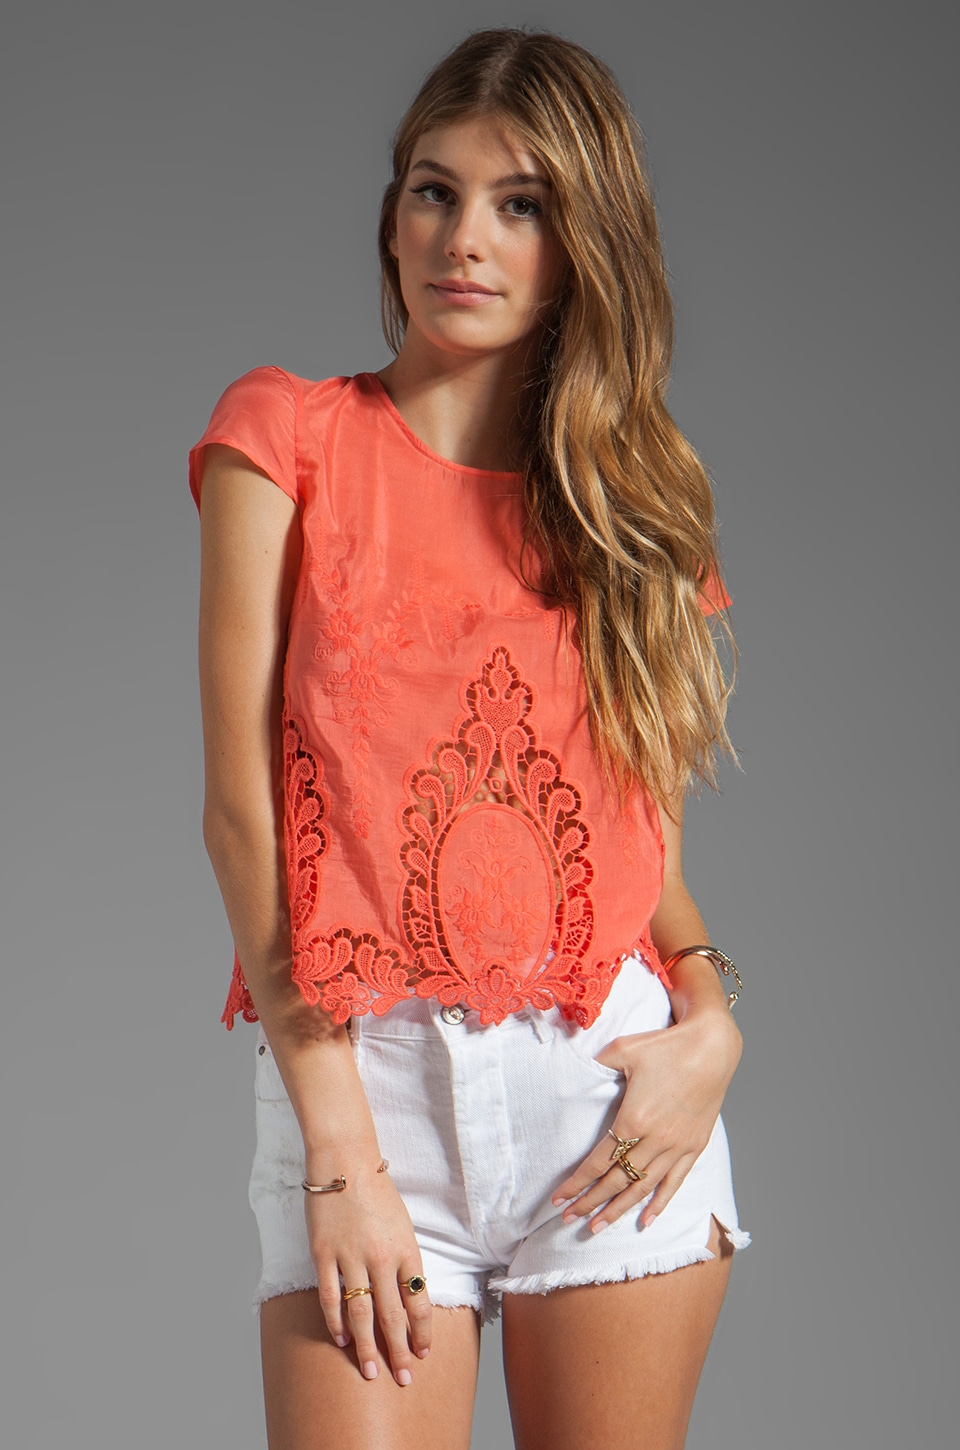 Dolce Vita Story Petticoat Embroider Blouse in Melon